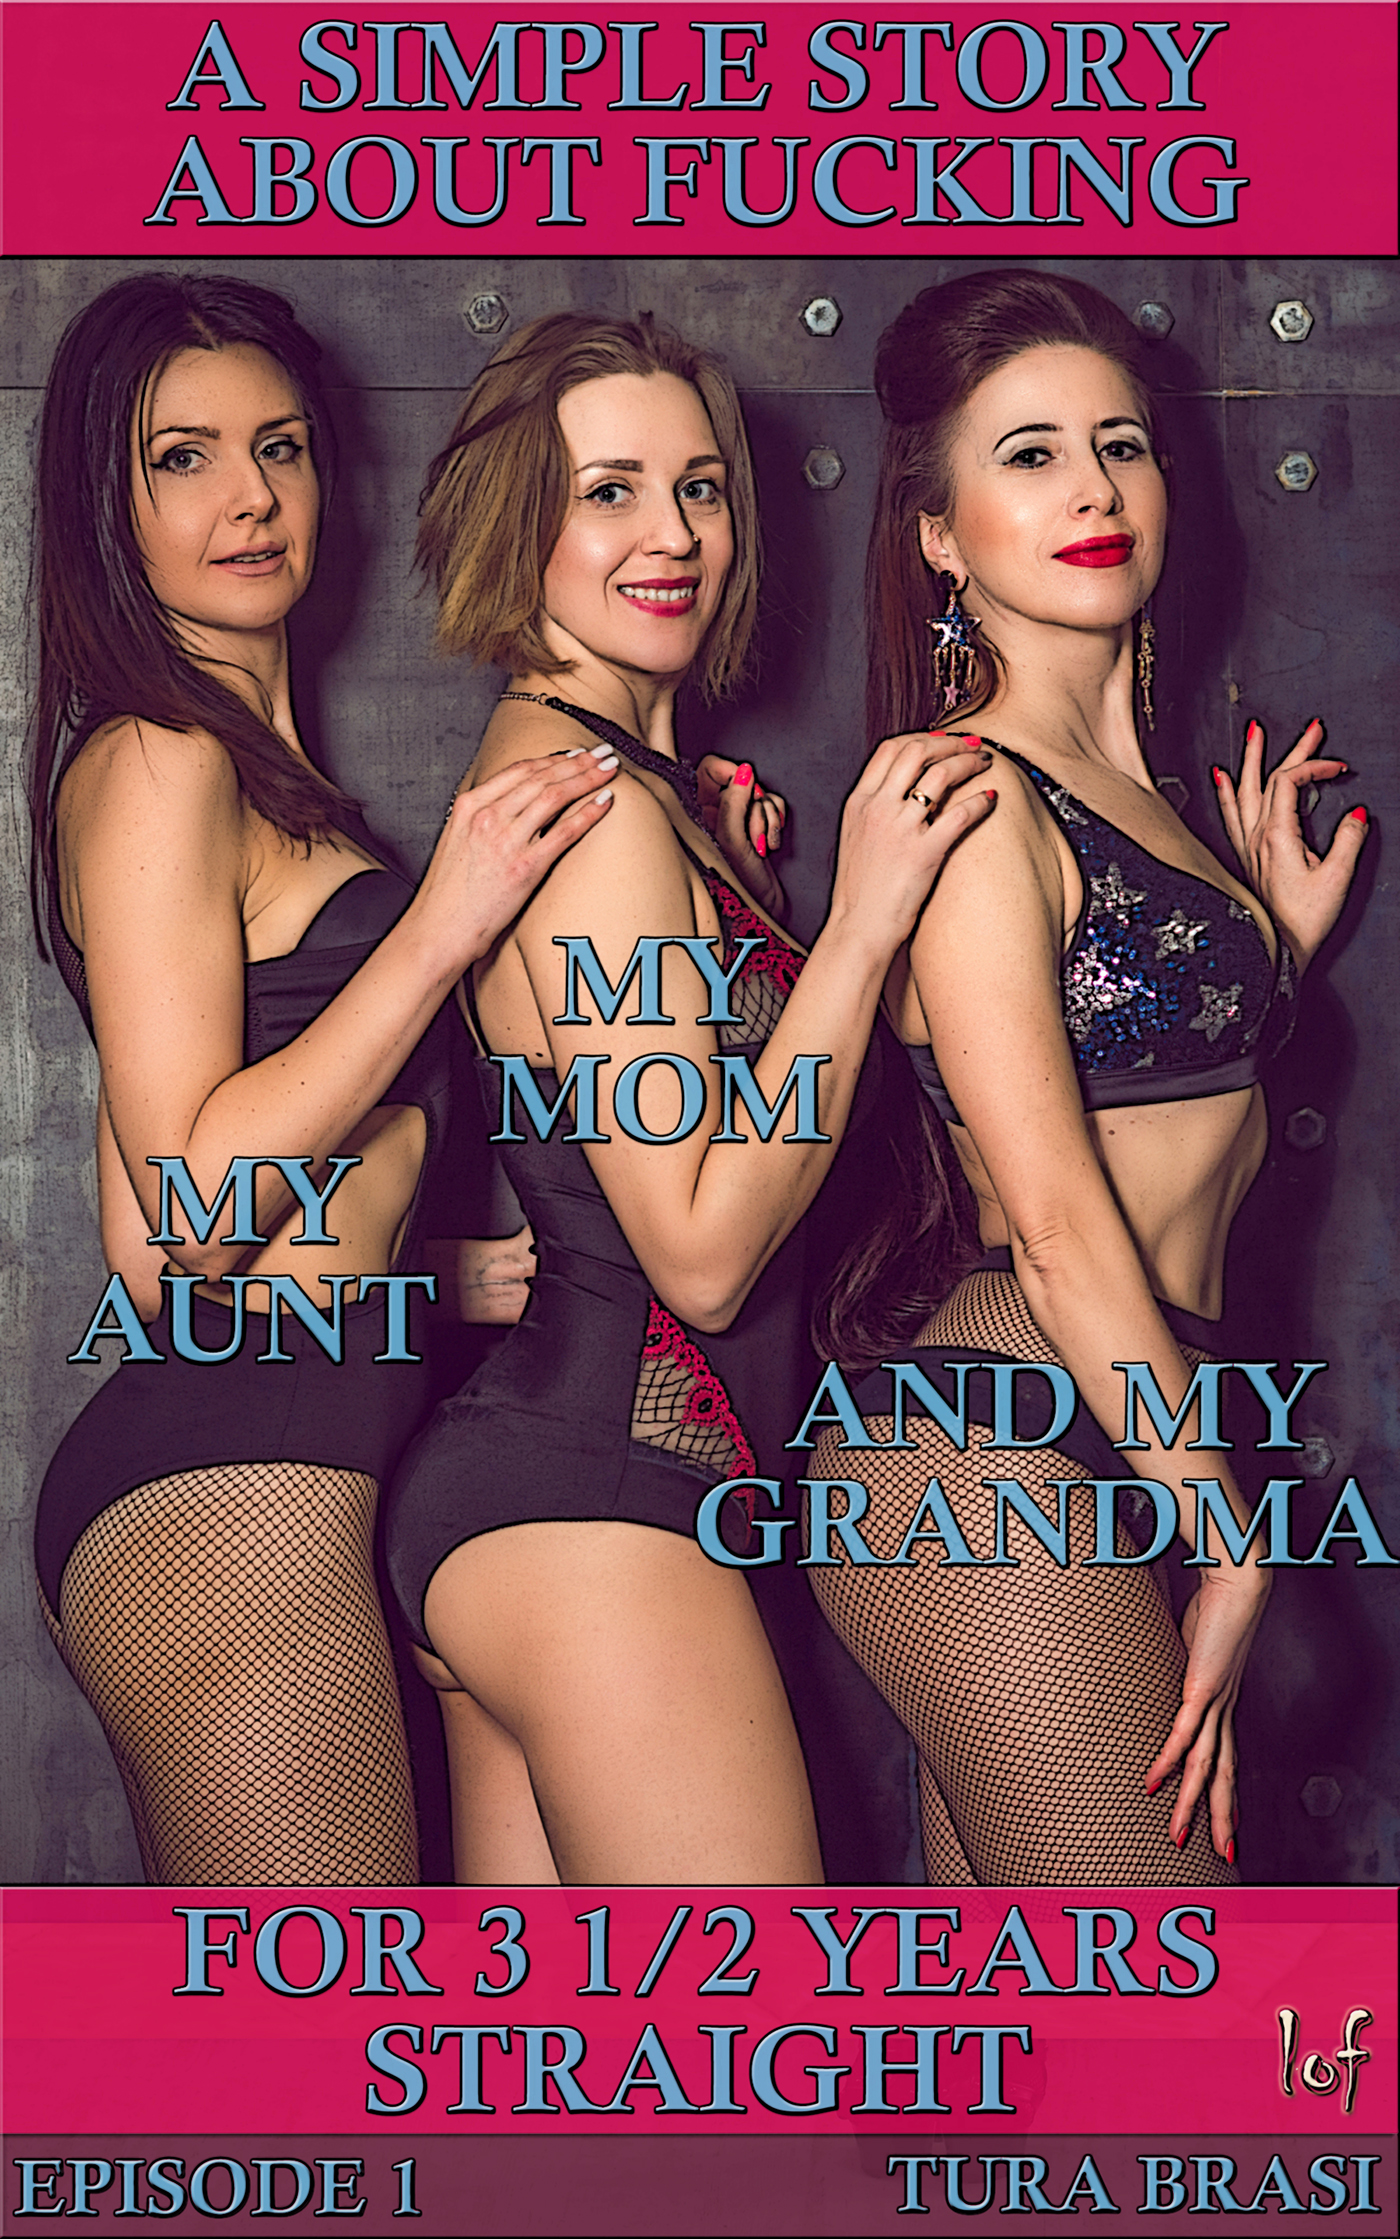 LOF New Release: A Simple Story About Fucking My Mom, My Aunt, And My Grandma For 3½ Years Straight: Episode 1